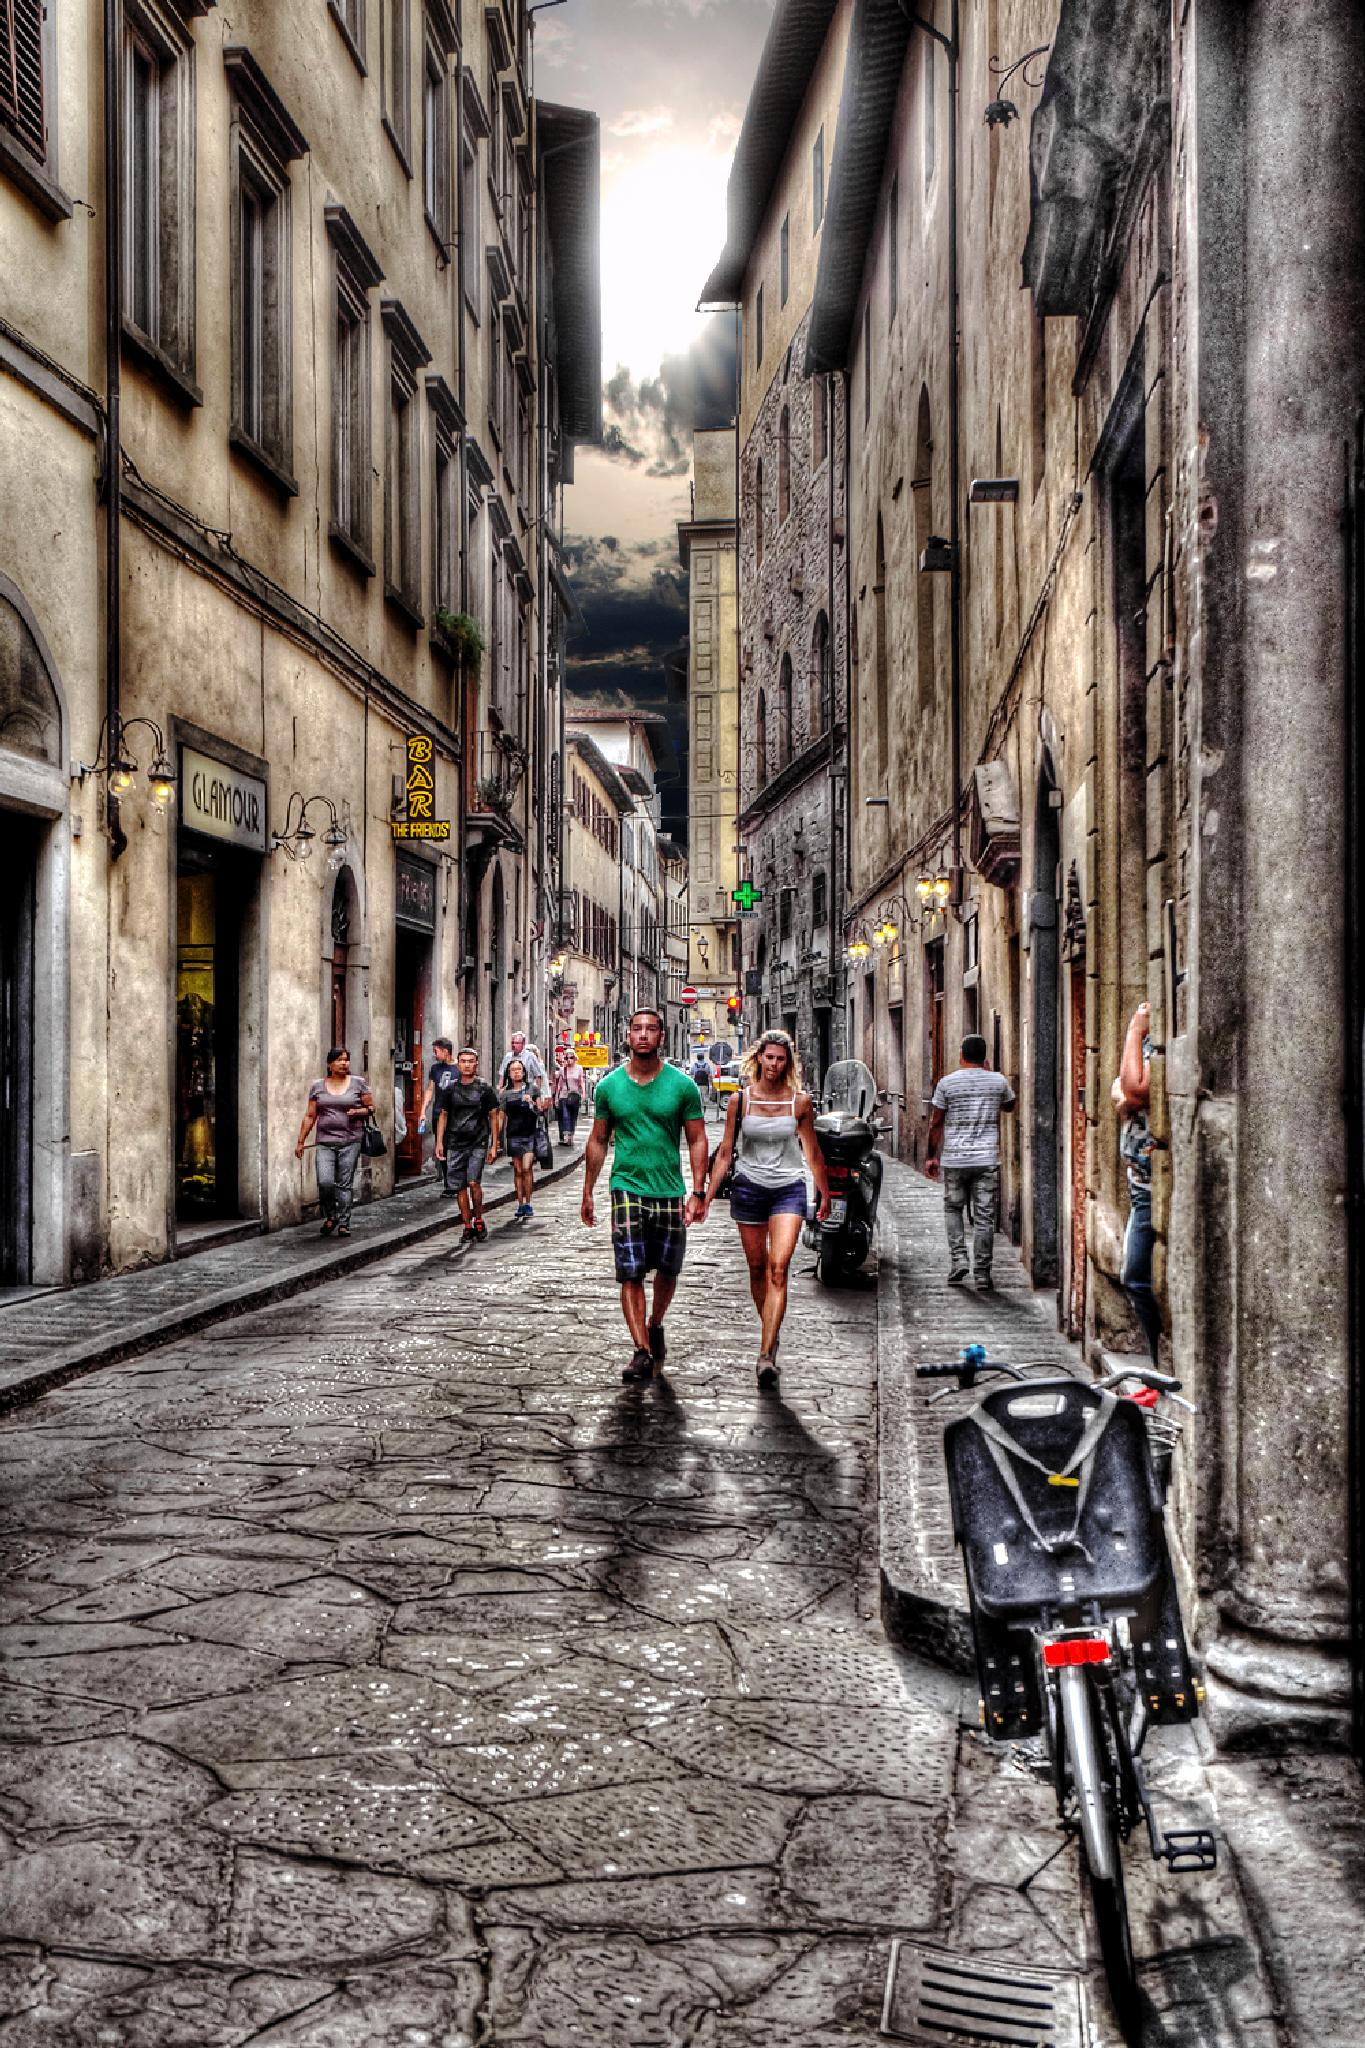 Streets of Florence by kalibrahim